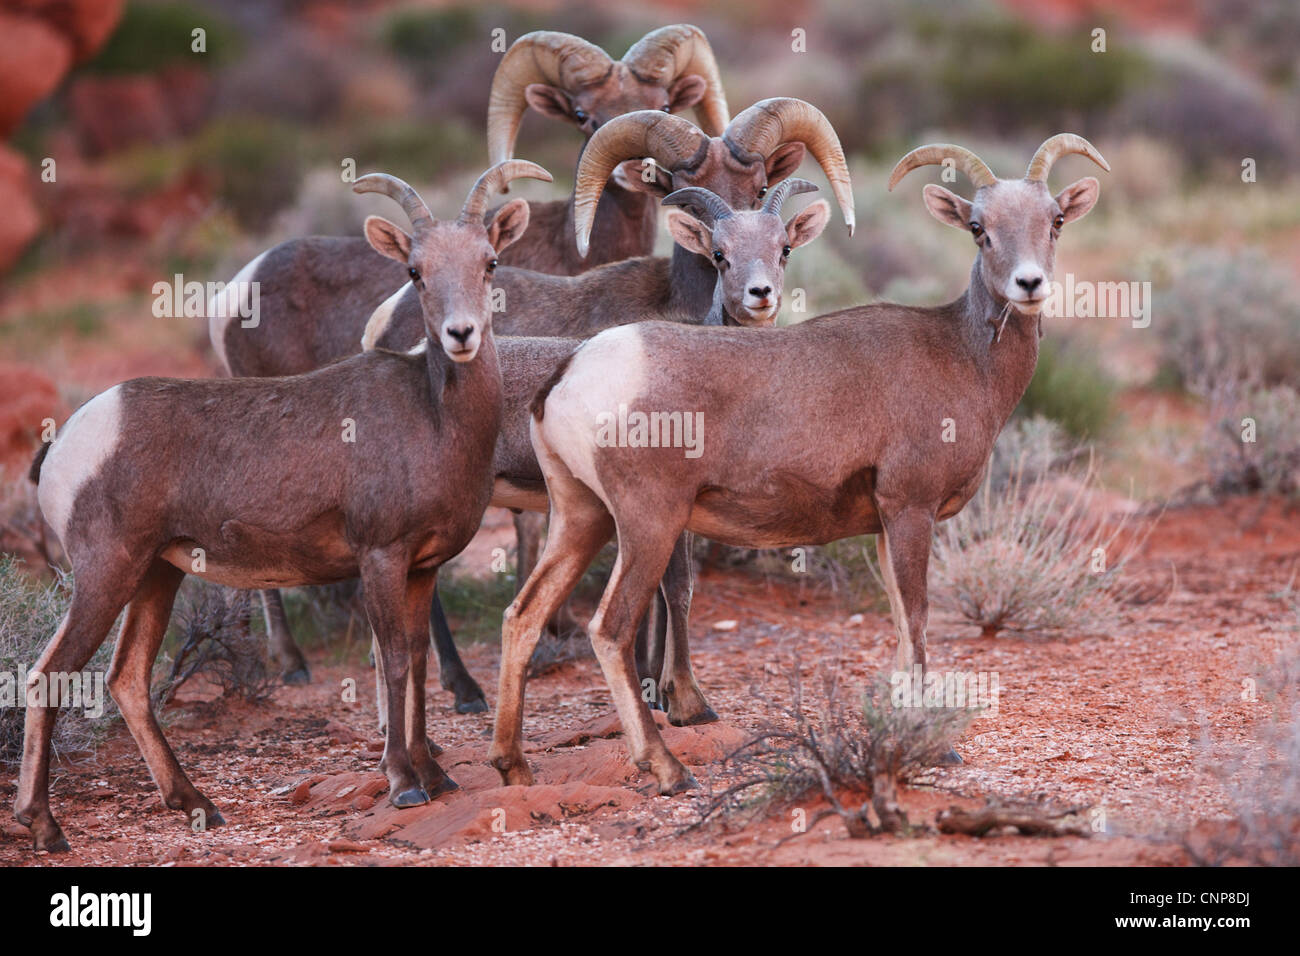 Big Horn Sheep rams and ewes in the desert at Valley of Fire state park Nevada - Stock Image